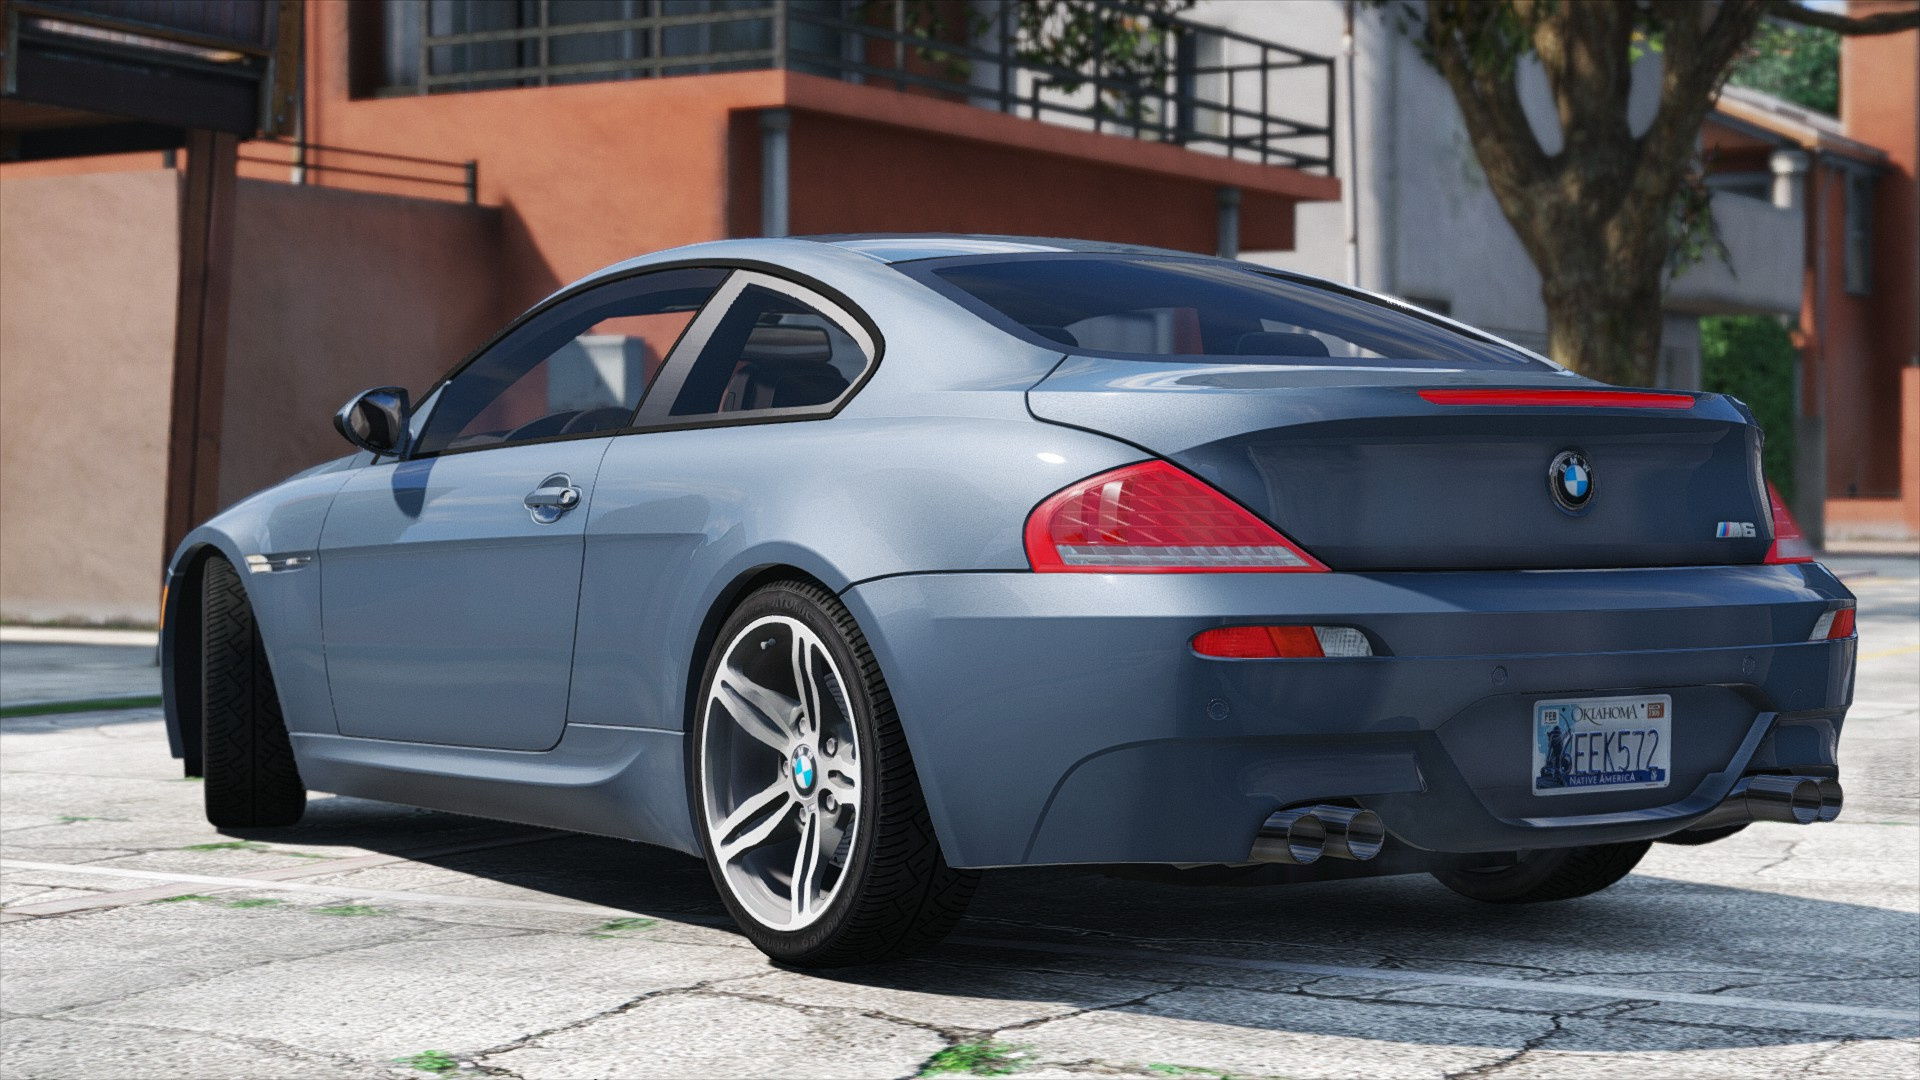 bmw m6 e63 tuning gta5. Black Bedroom Furniture Sets. Home Design Ideas